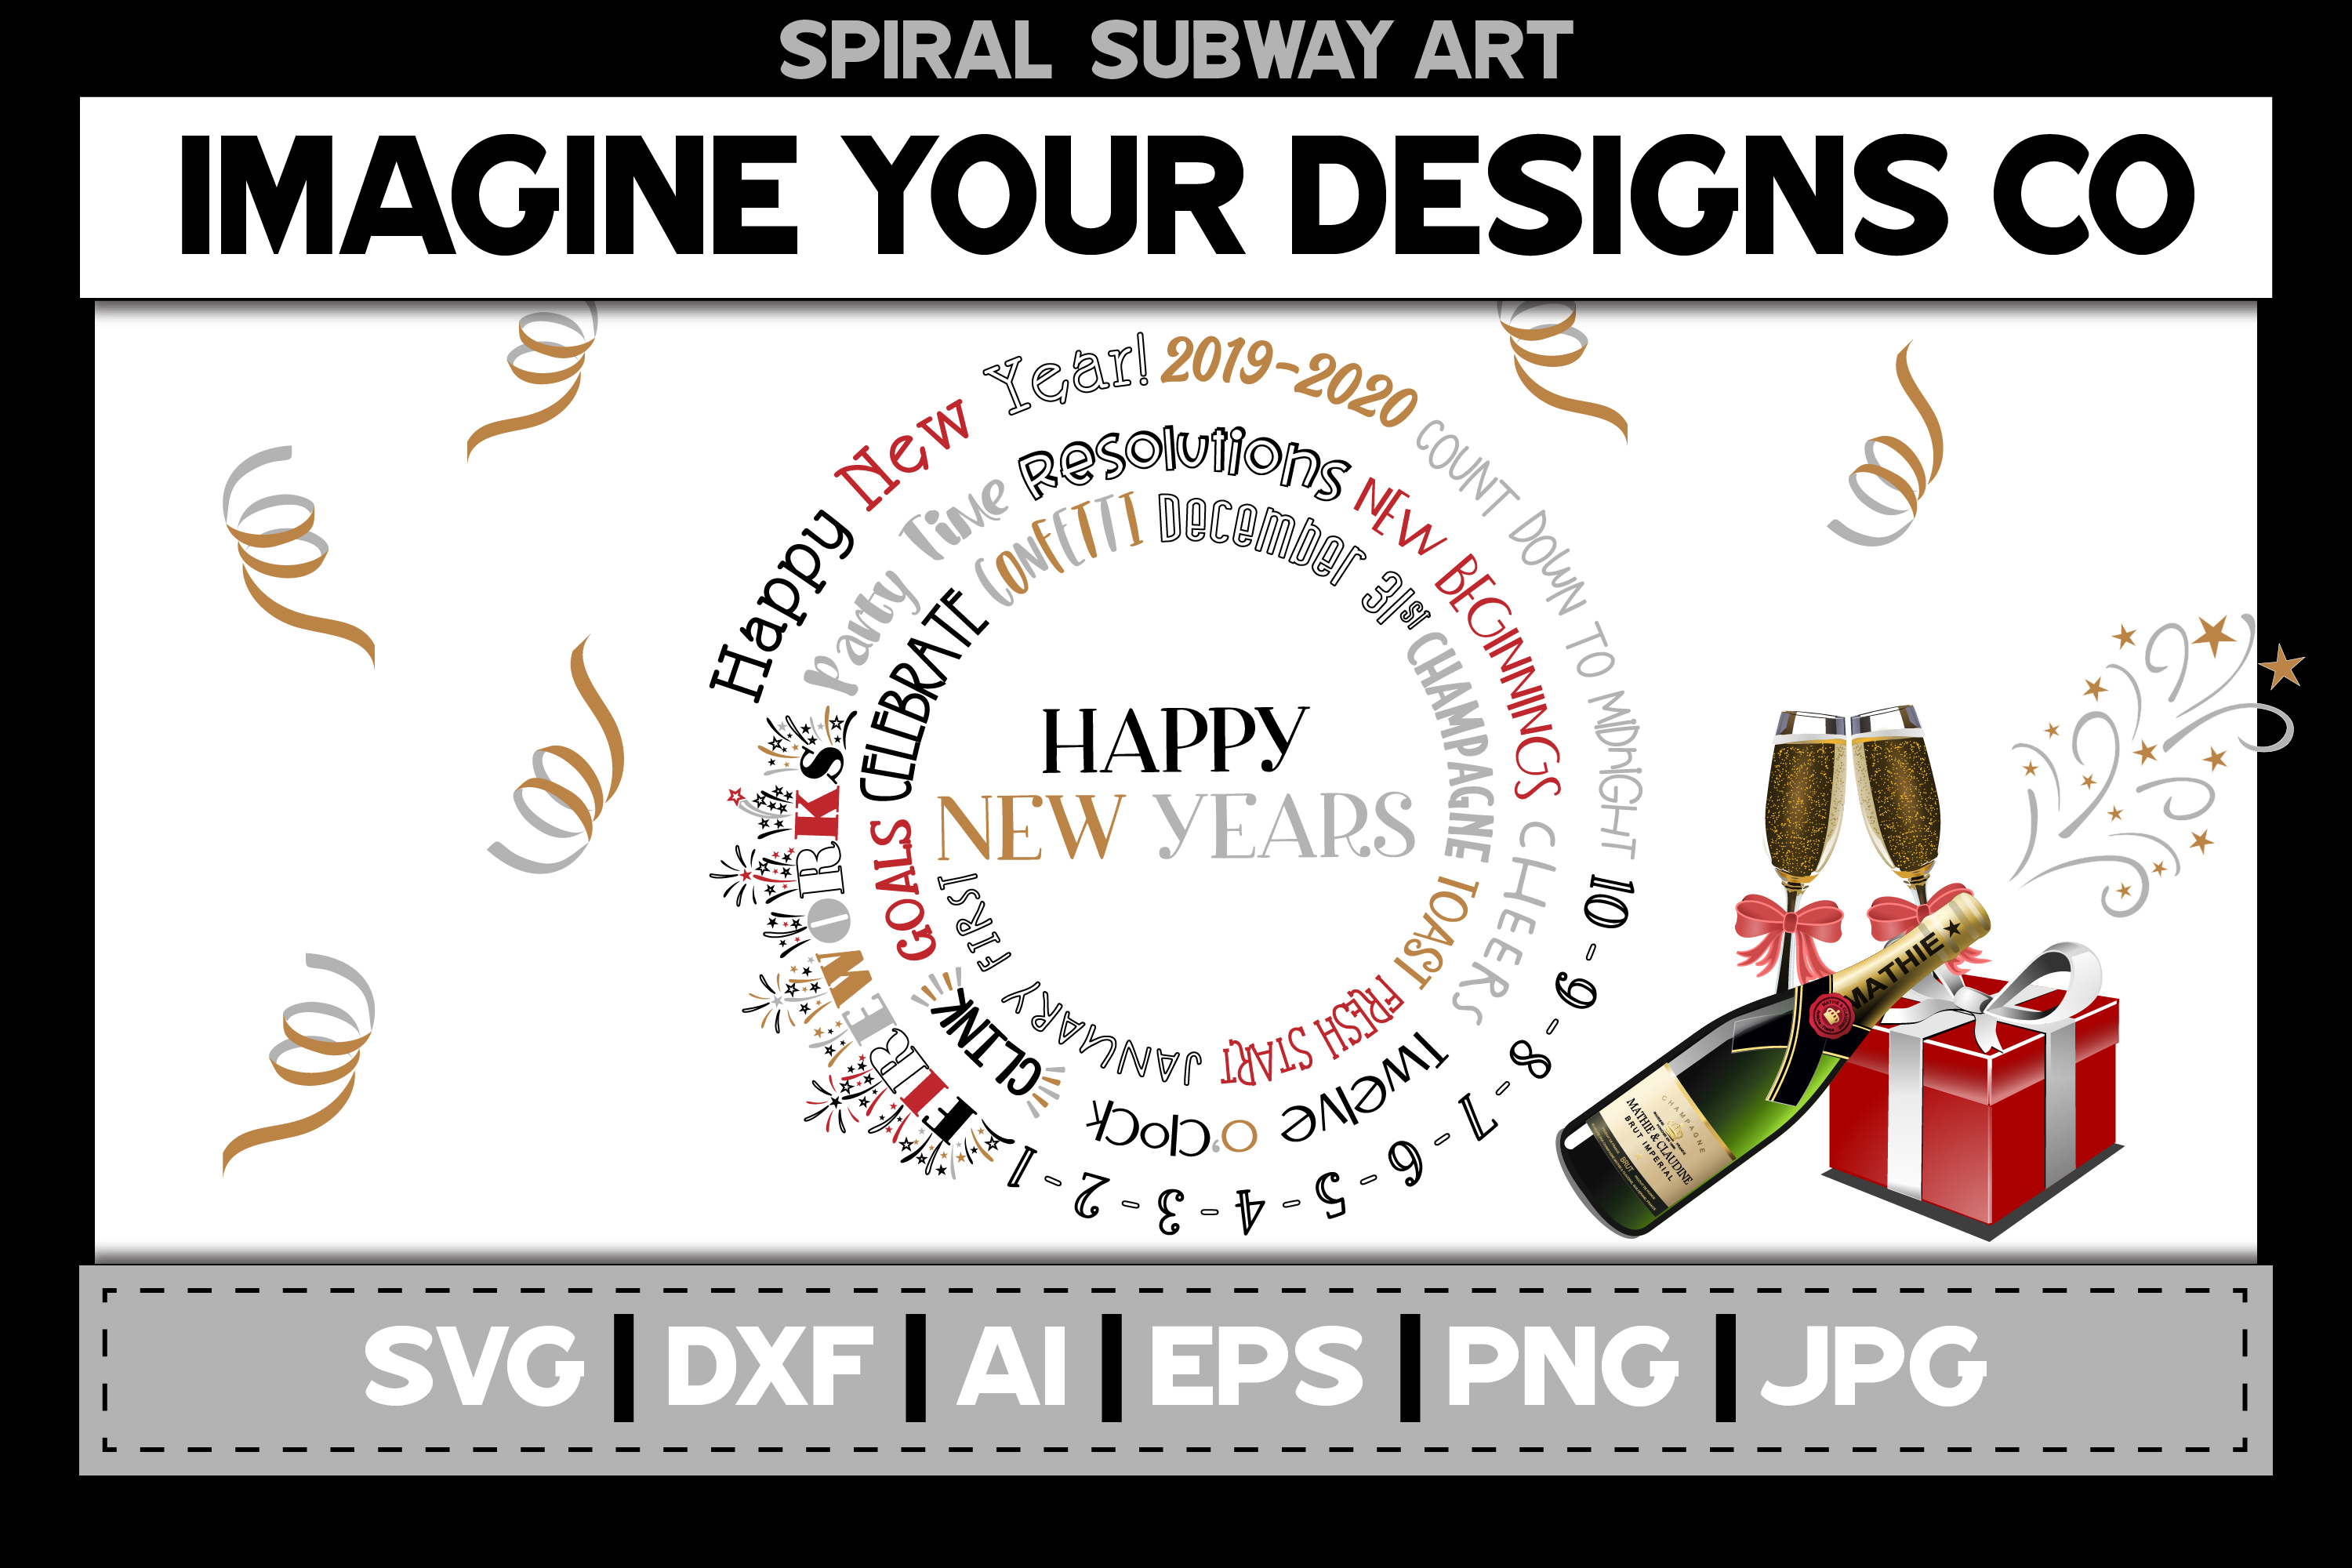 Merry Christmas Spiral Subway Art, SVG Cut File Sublimation example image 3